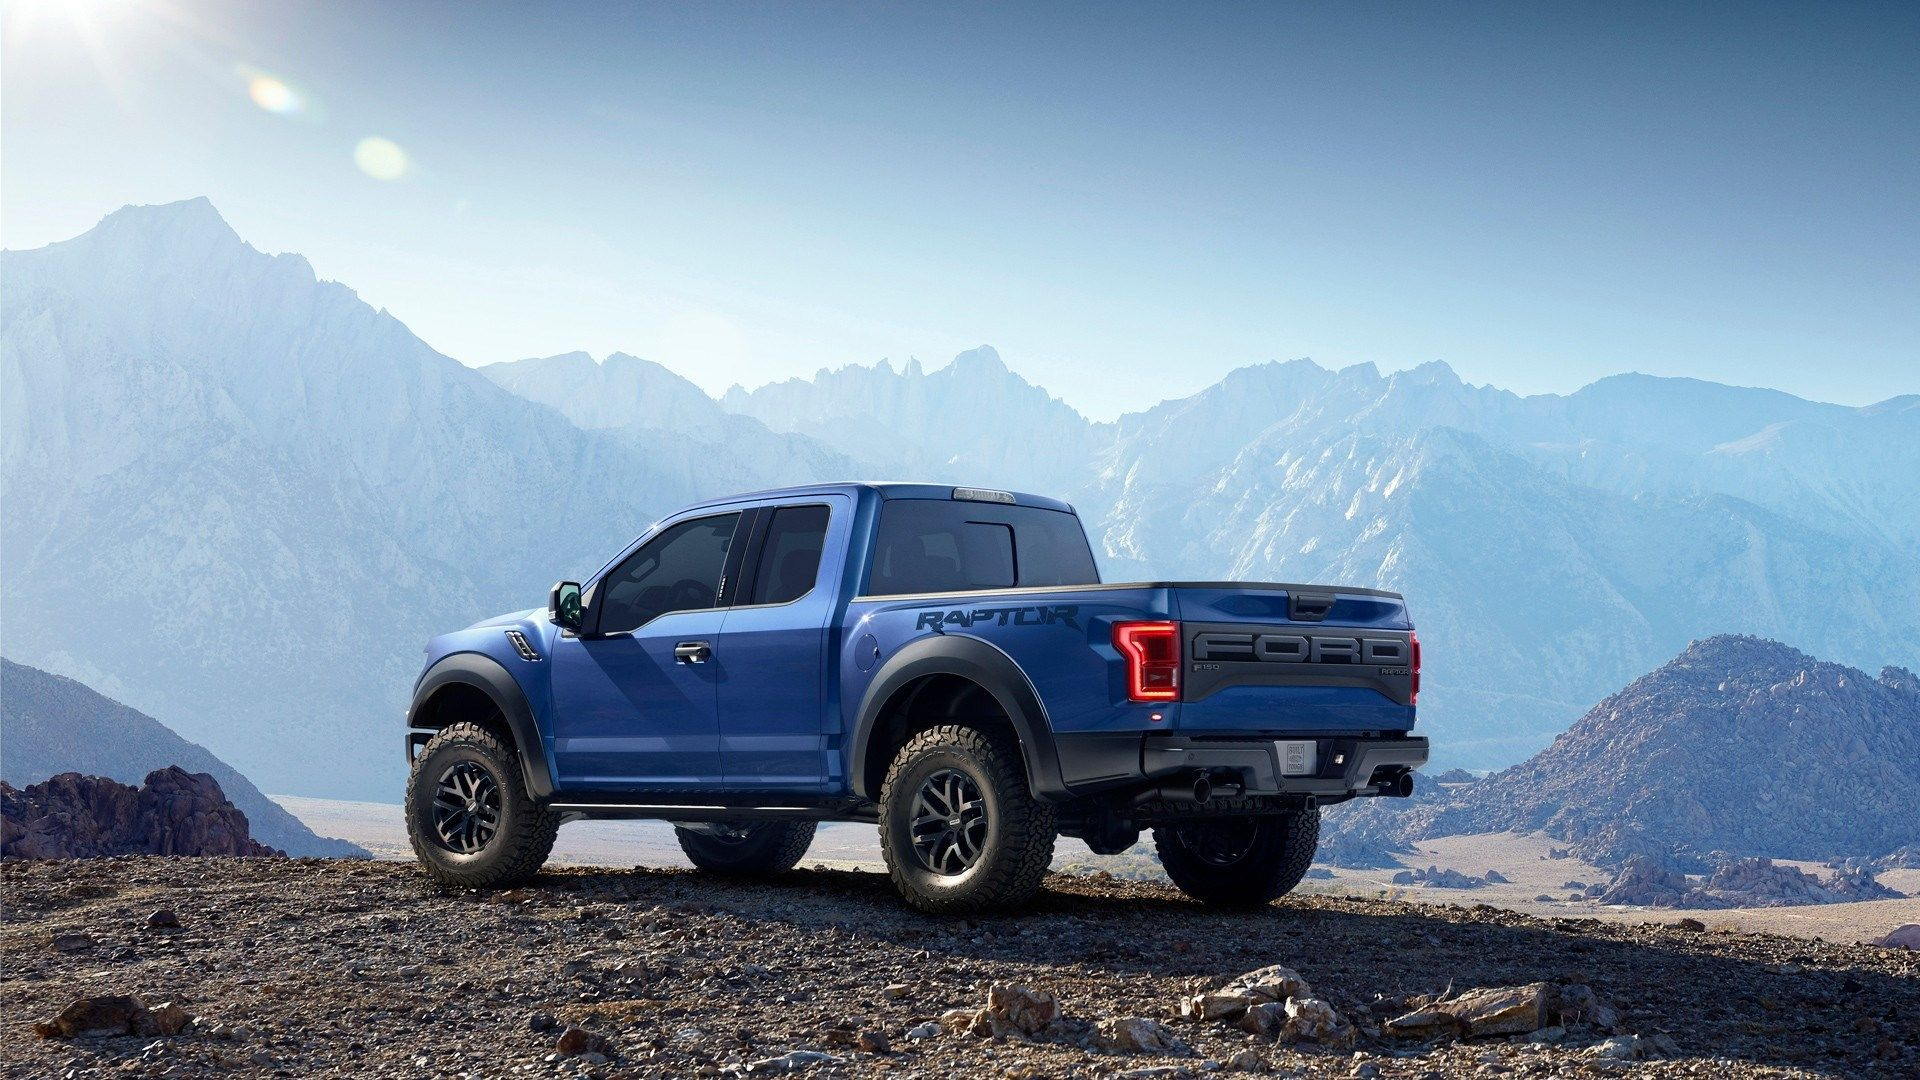 Ford F150 Wallpapers Free Download Ford Raptor Ford F150 Raptor Ford F150